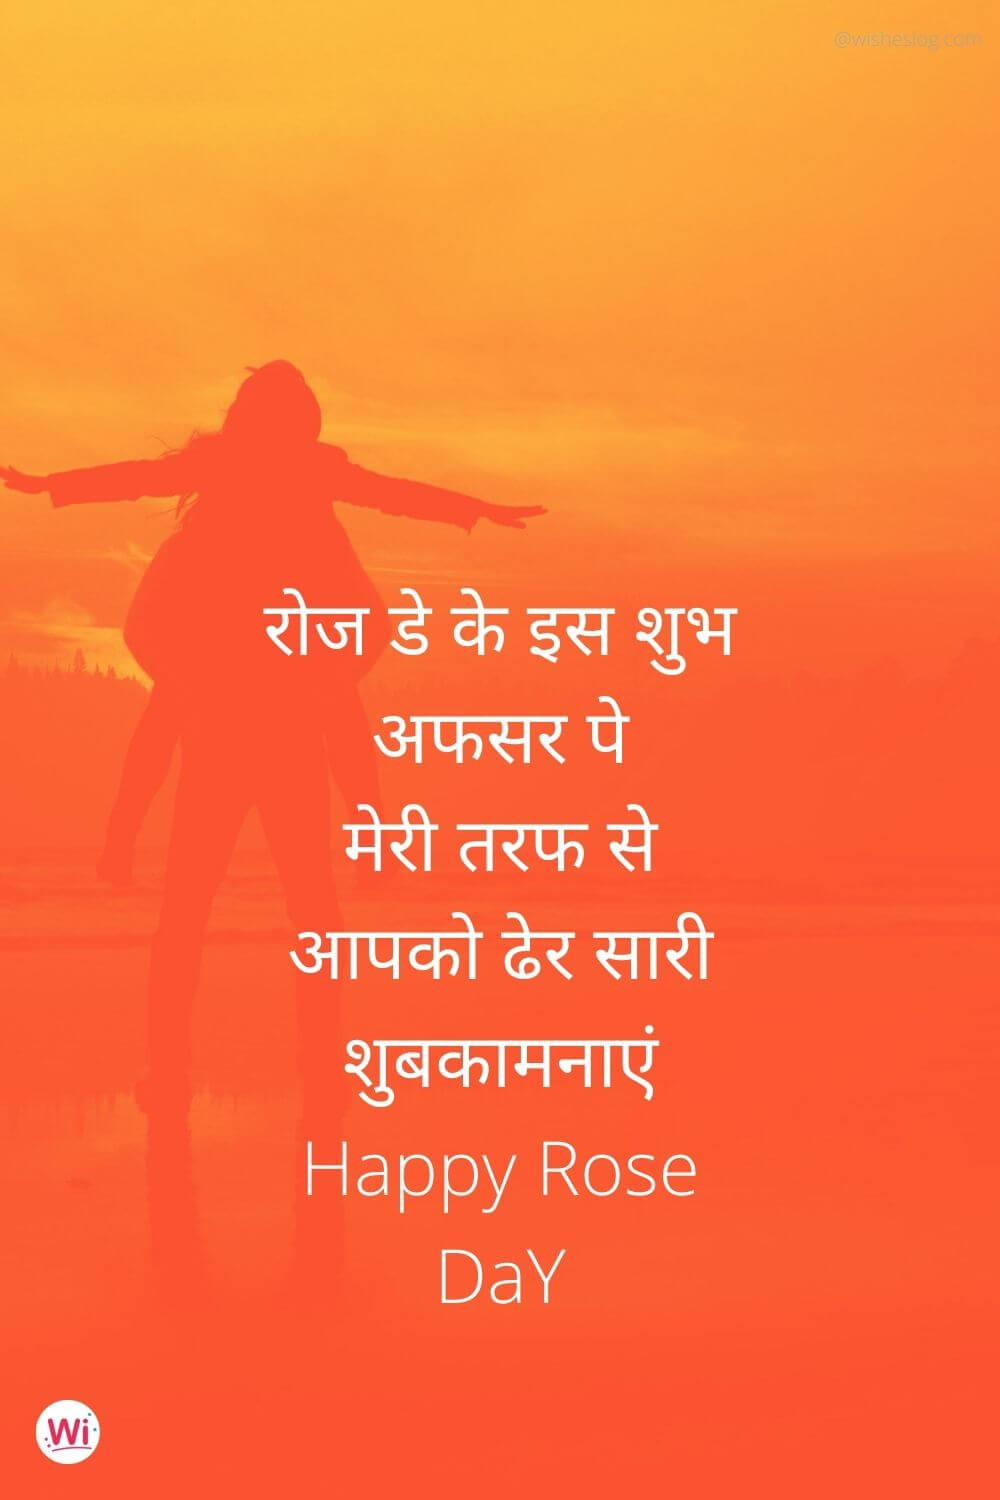 rose day special msg in hindi